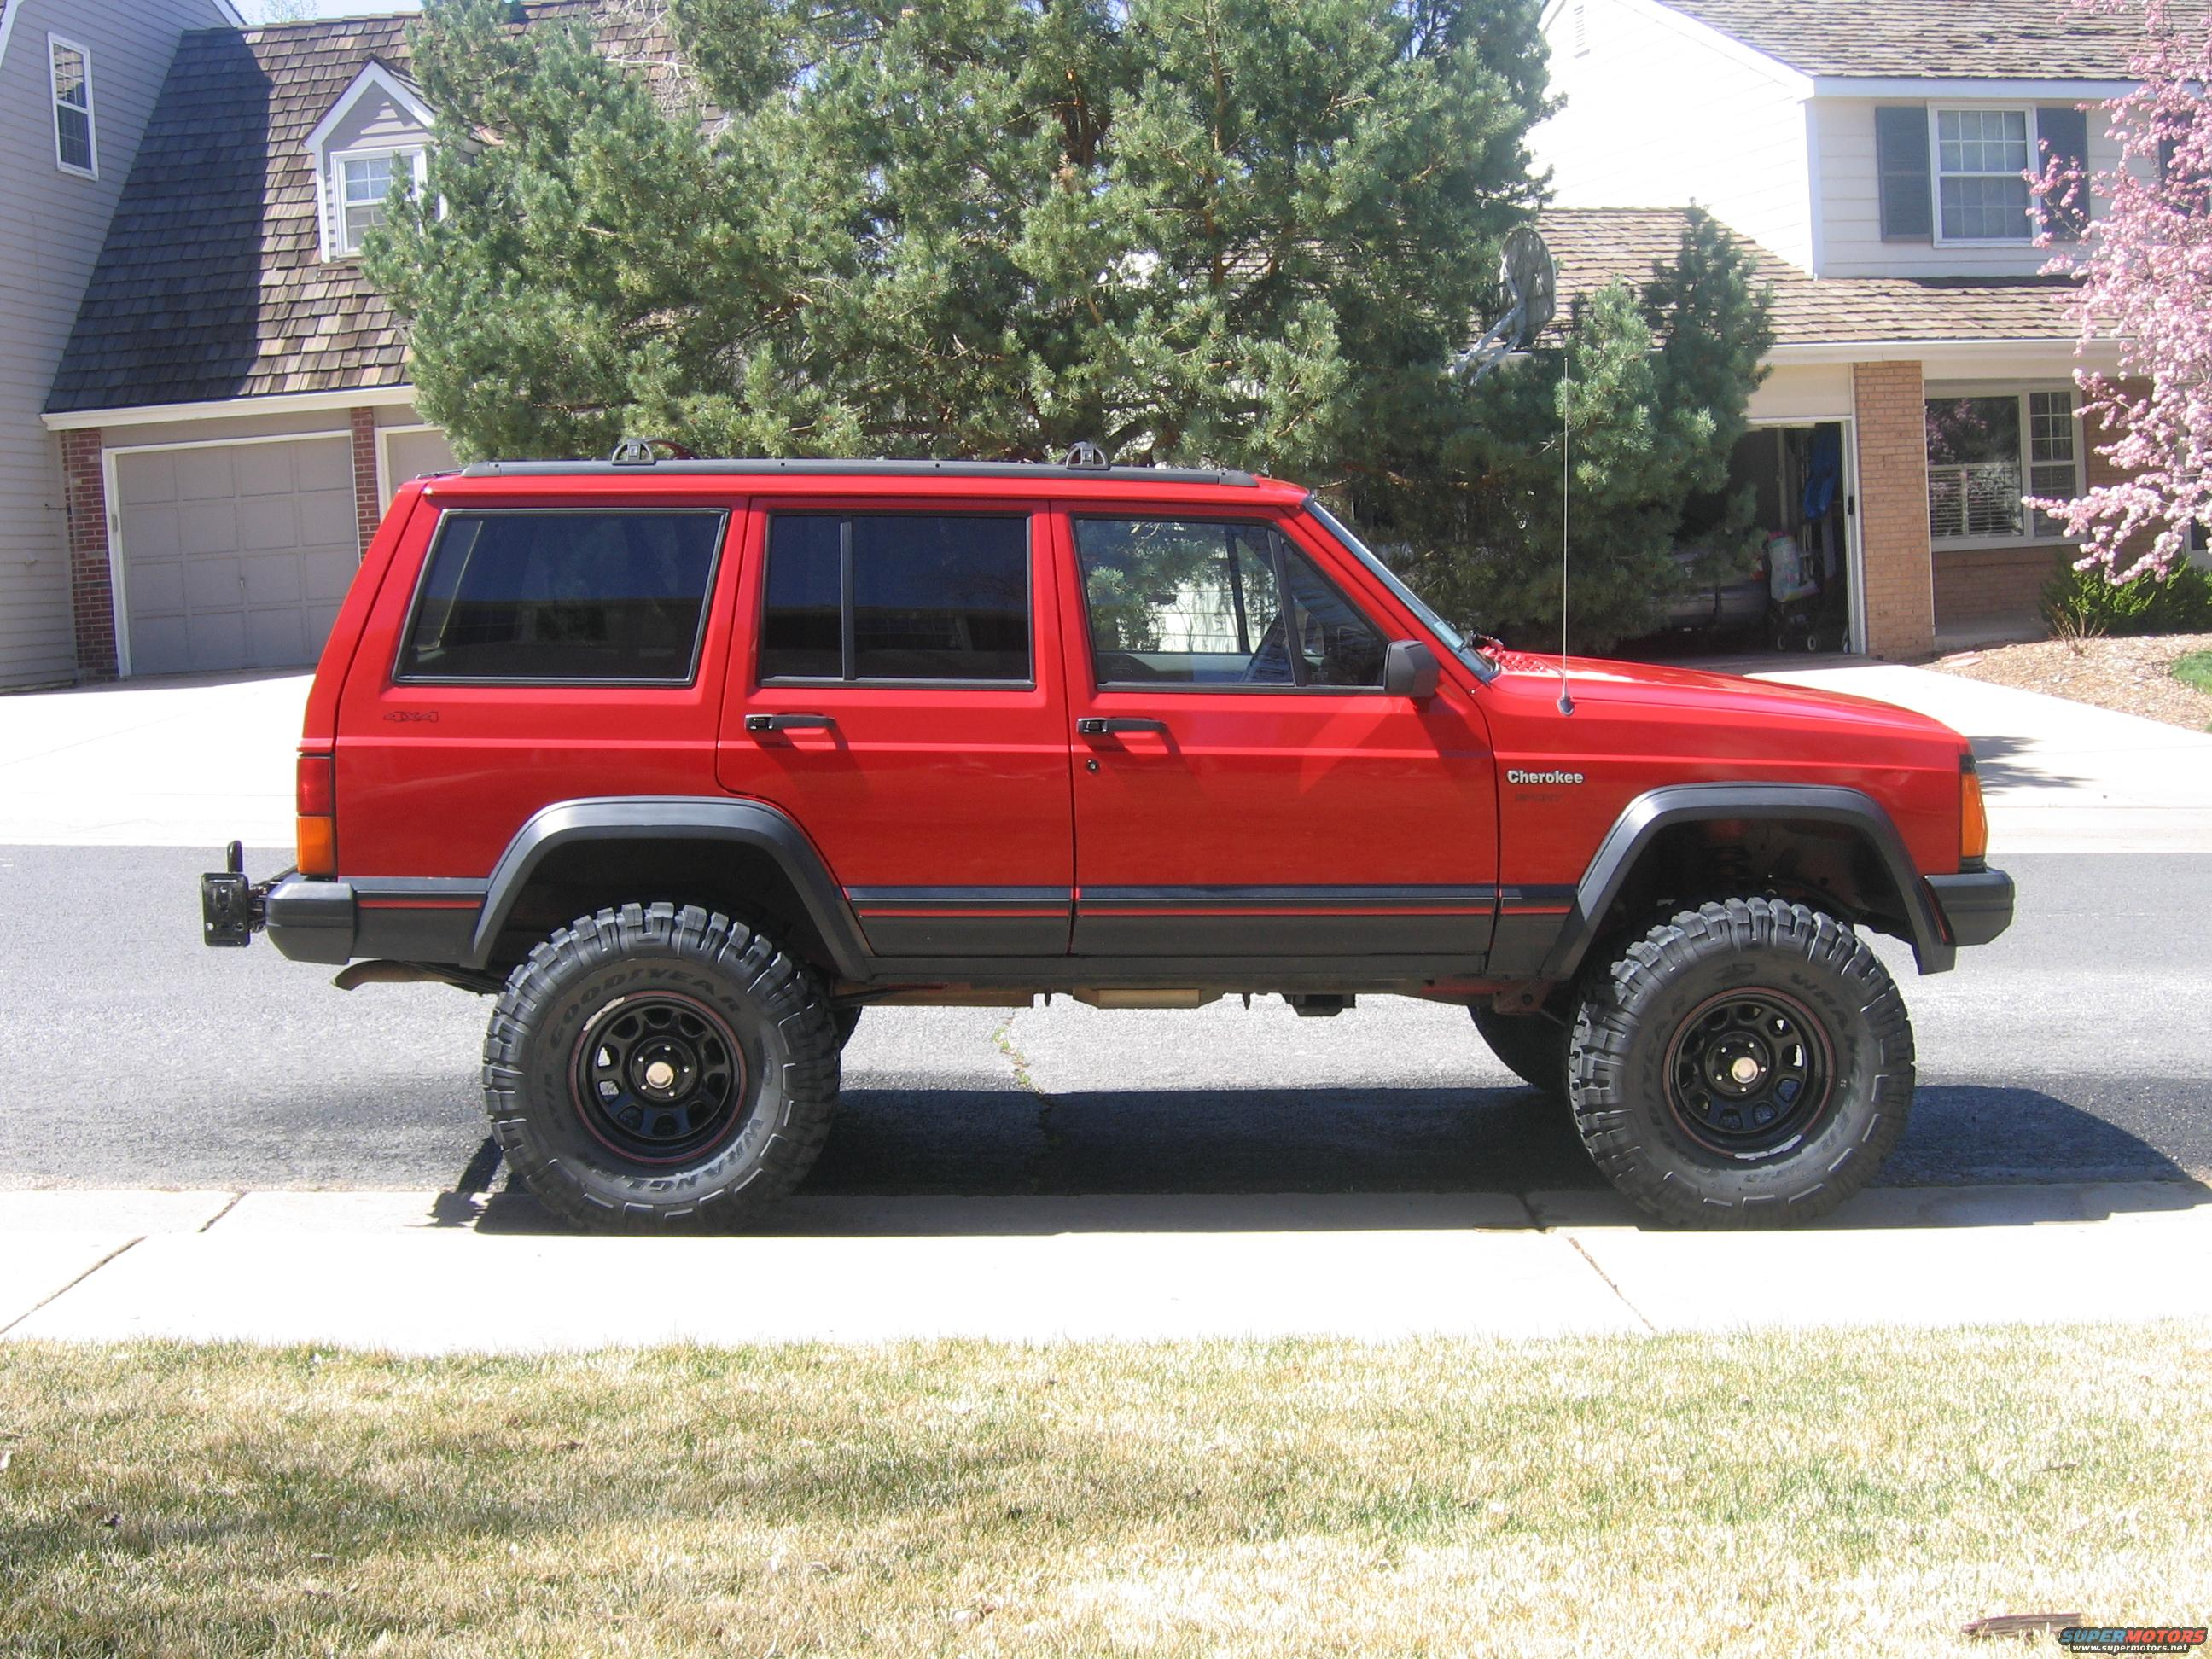 1996 Jeep Cherokee Lifted Shots picture | SuperMotors.net